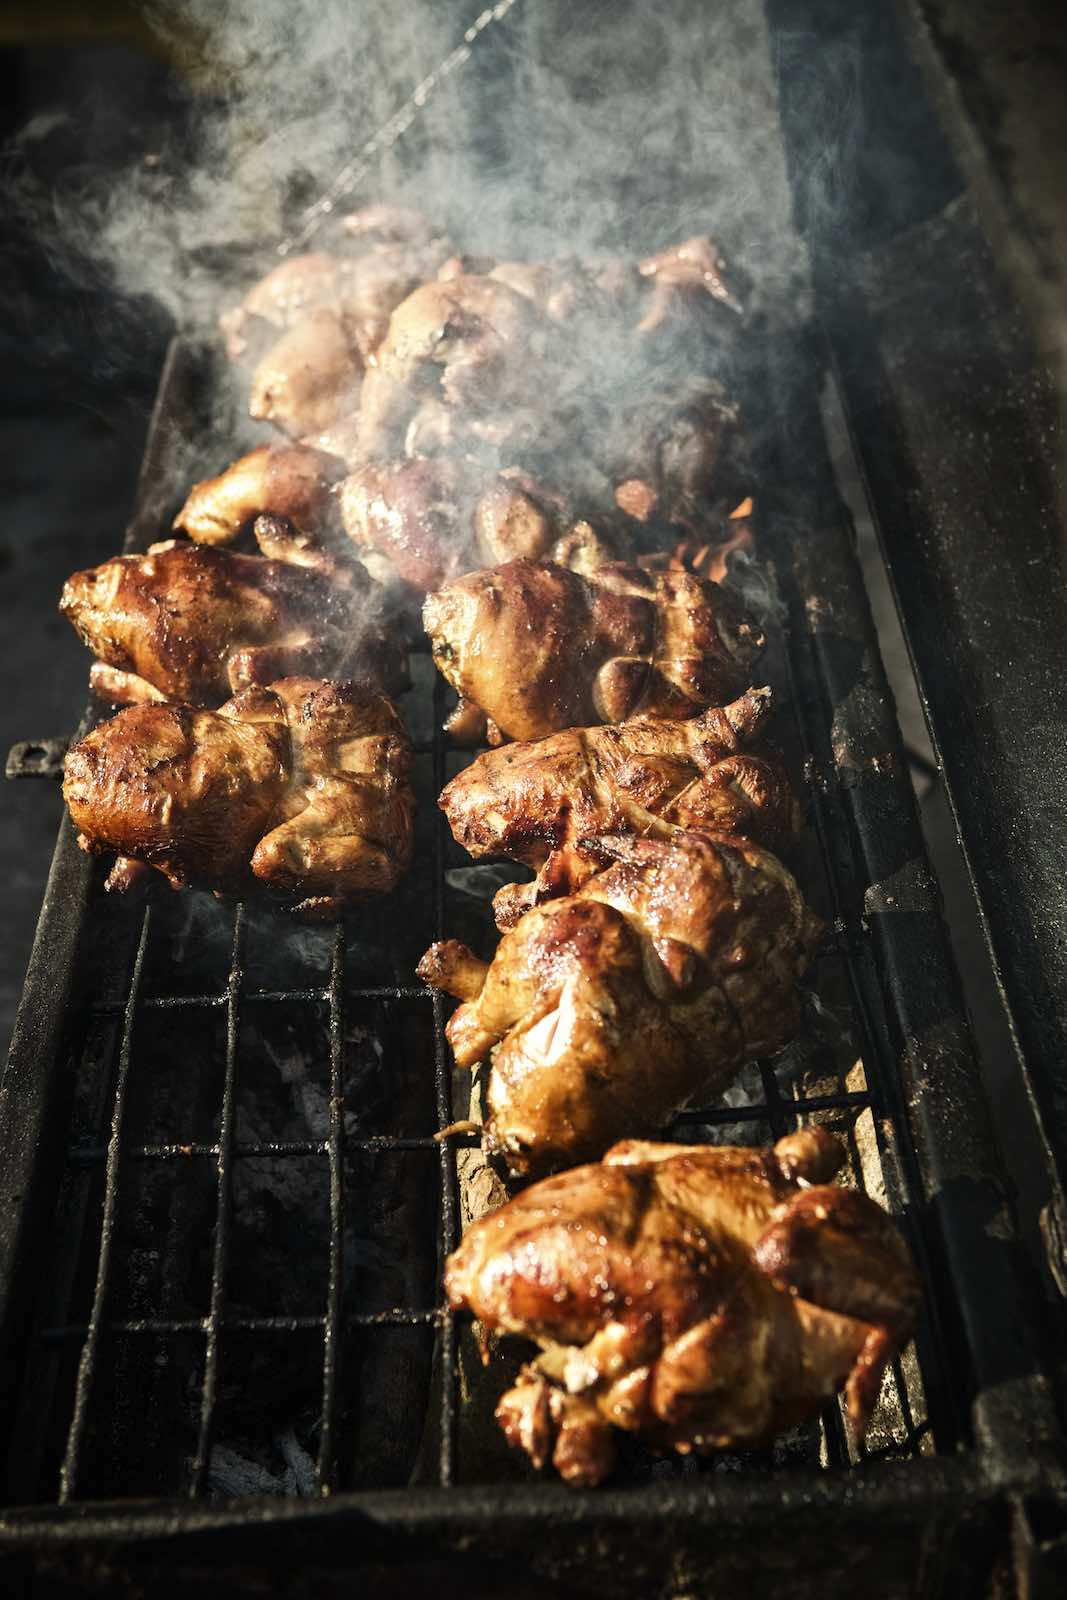 Jody Horton Photography - Chickens cooking on a smokey grill.